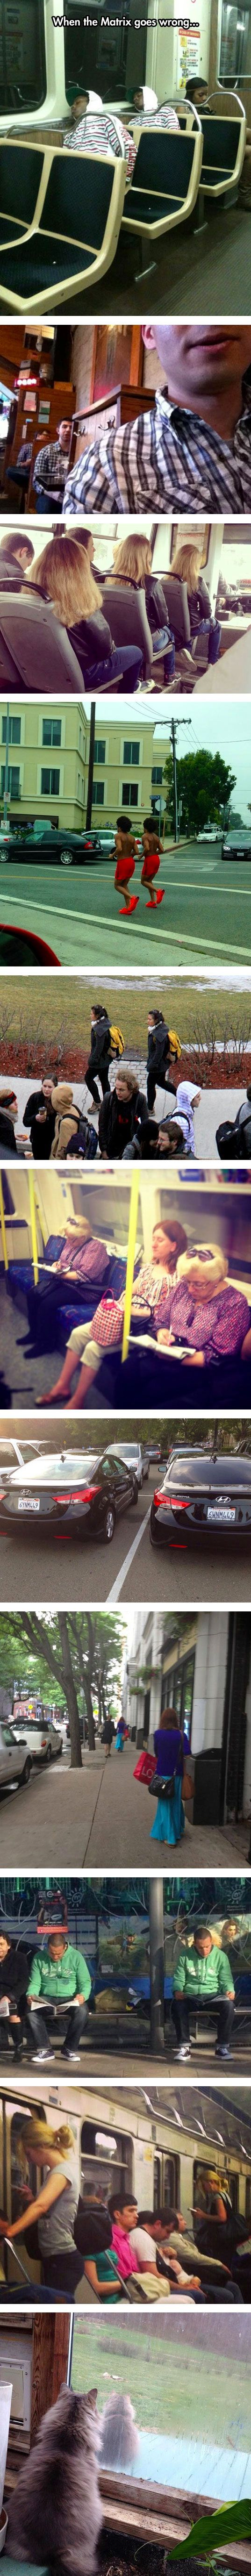 Oh, another glitch in the Matrix...